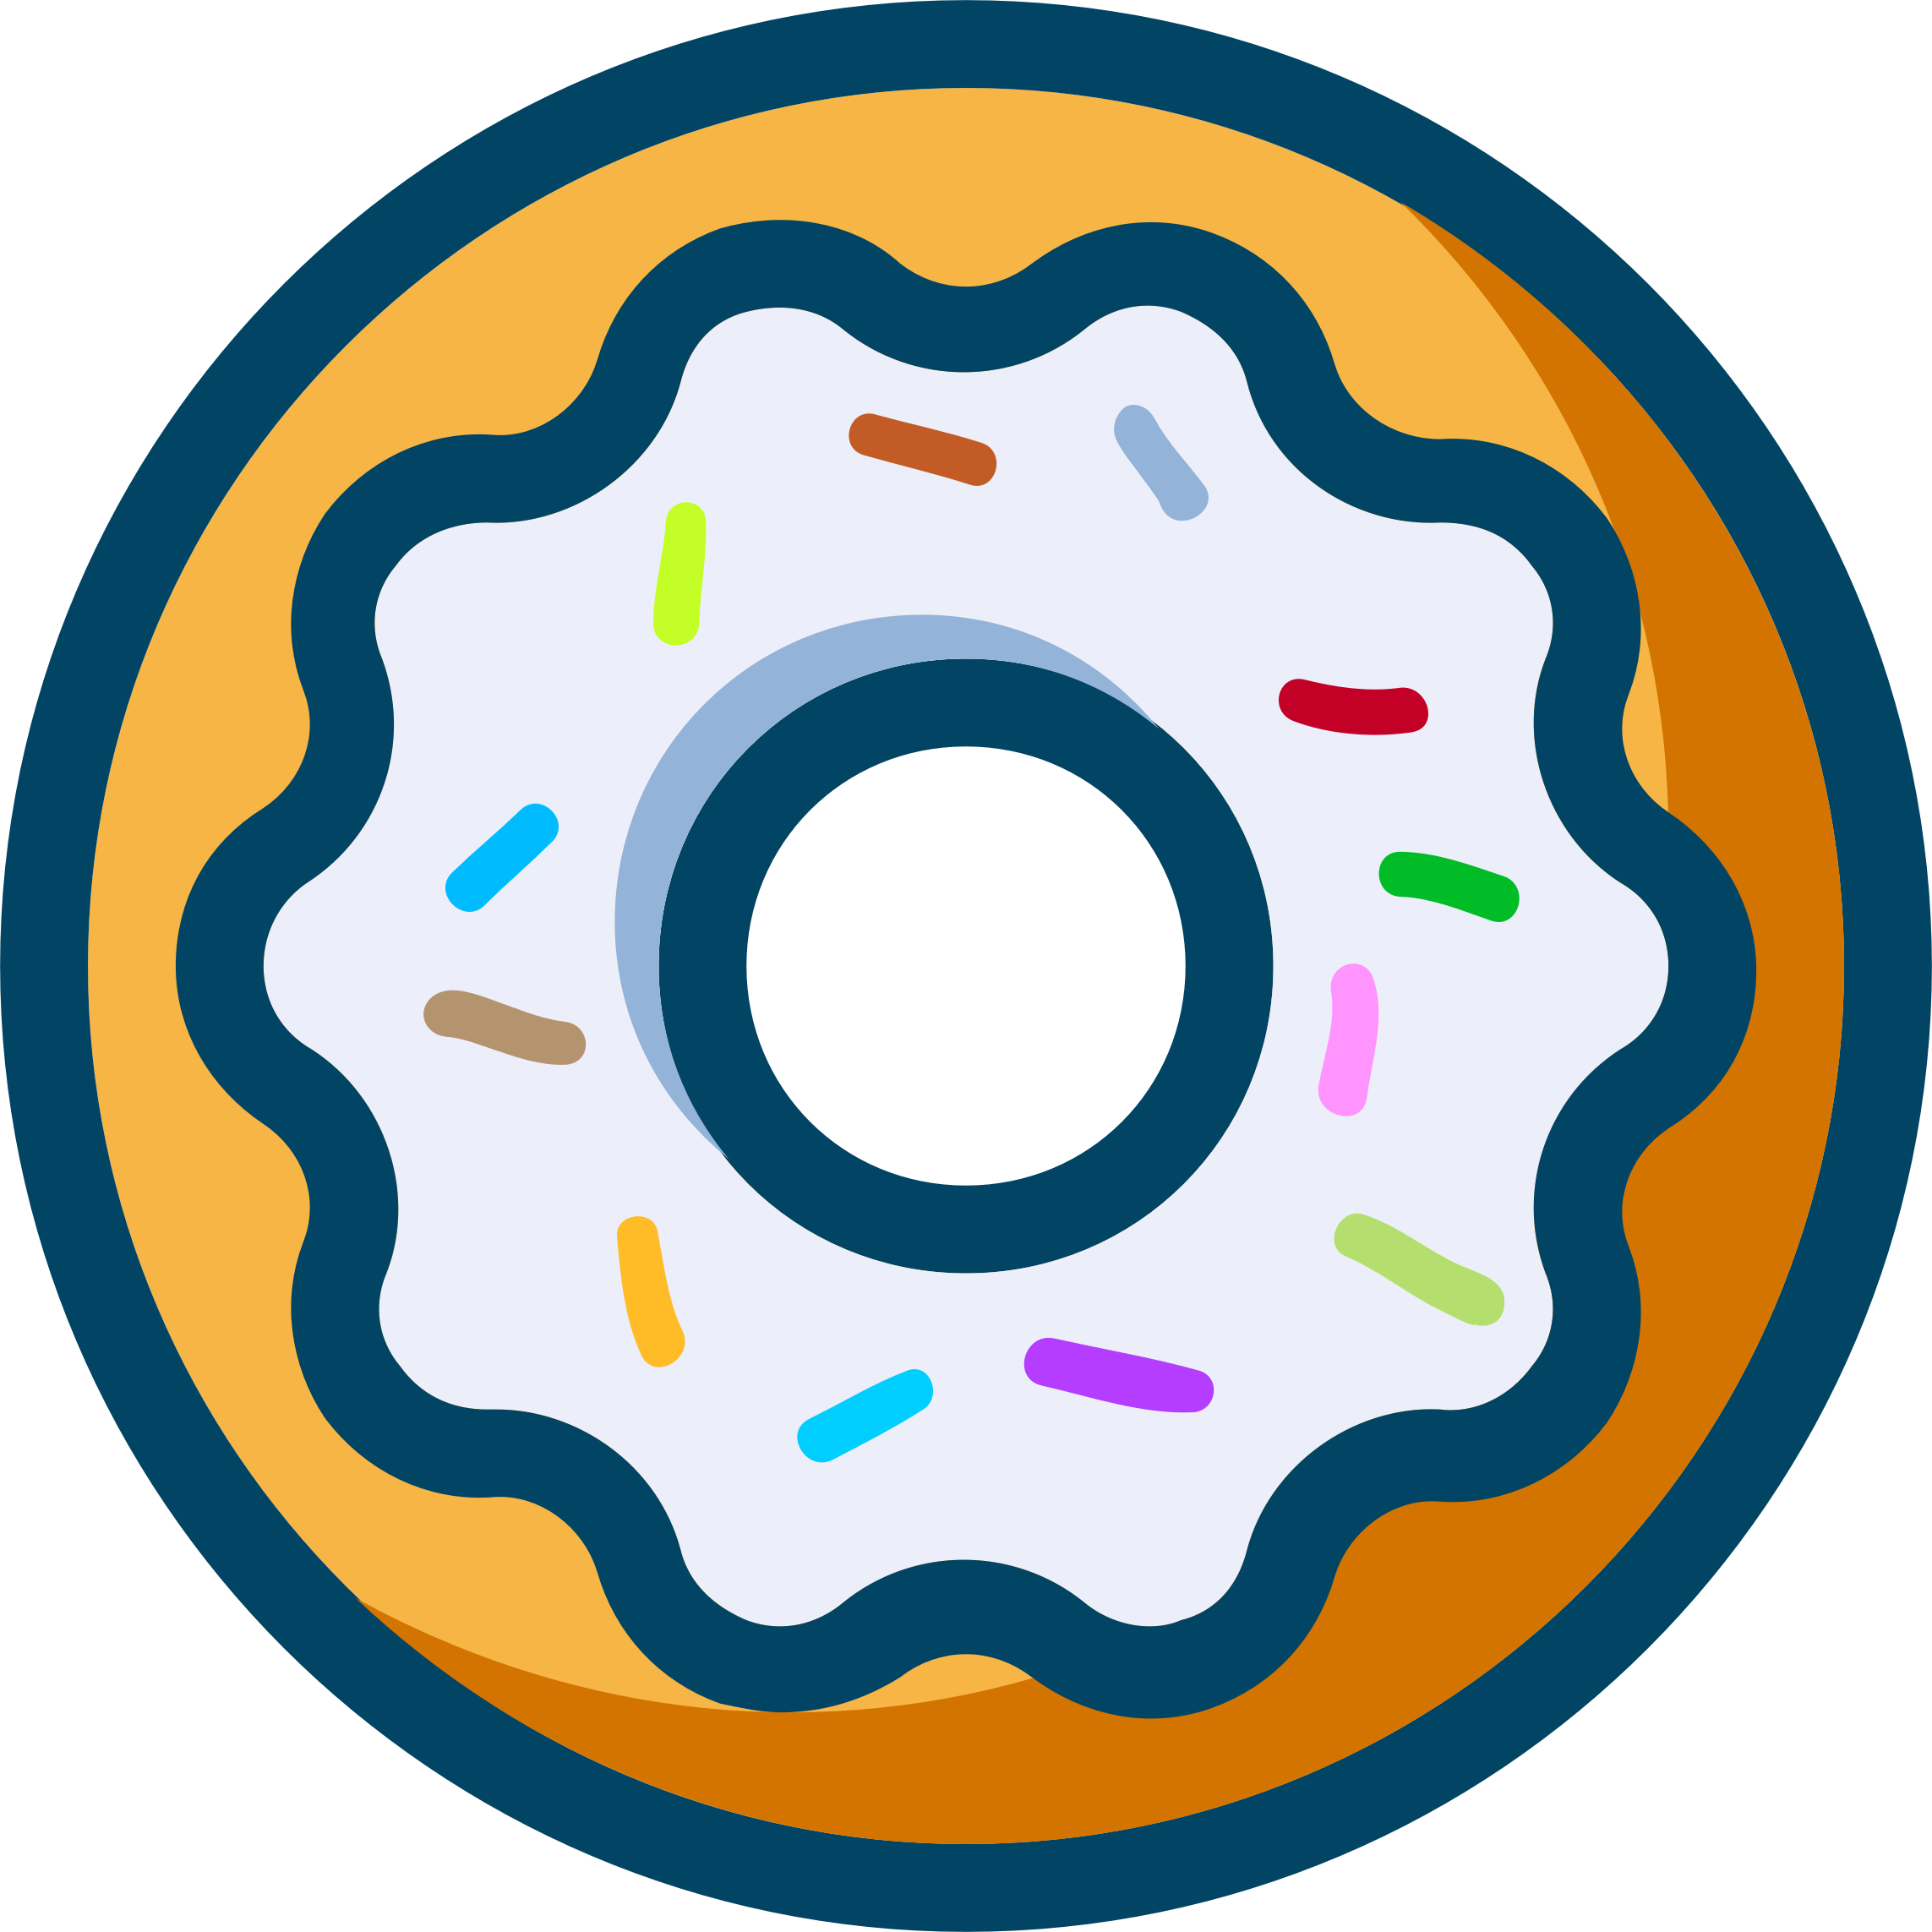 Doughnut clipart blue. Donut with sprinkles big